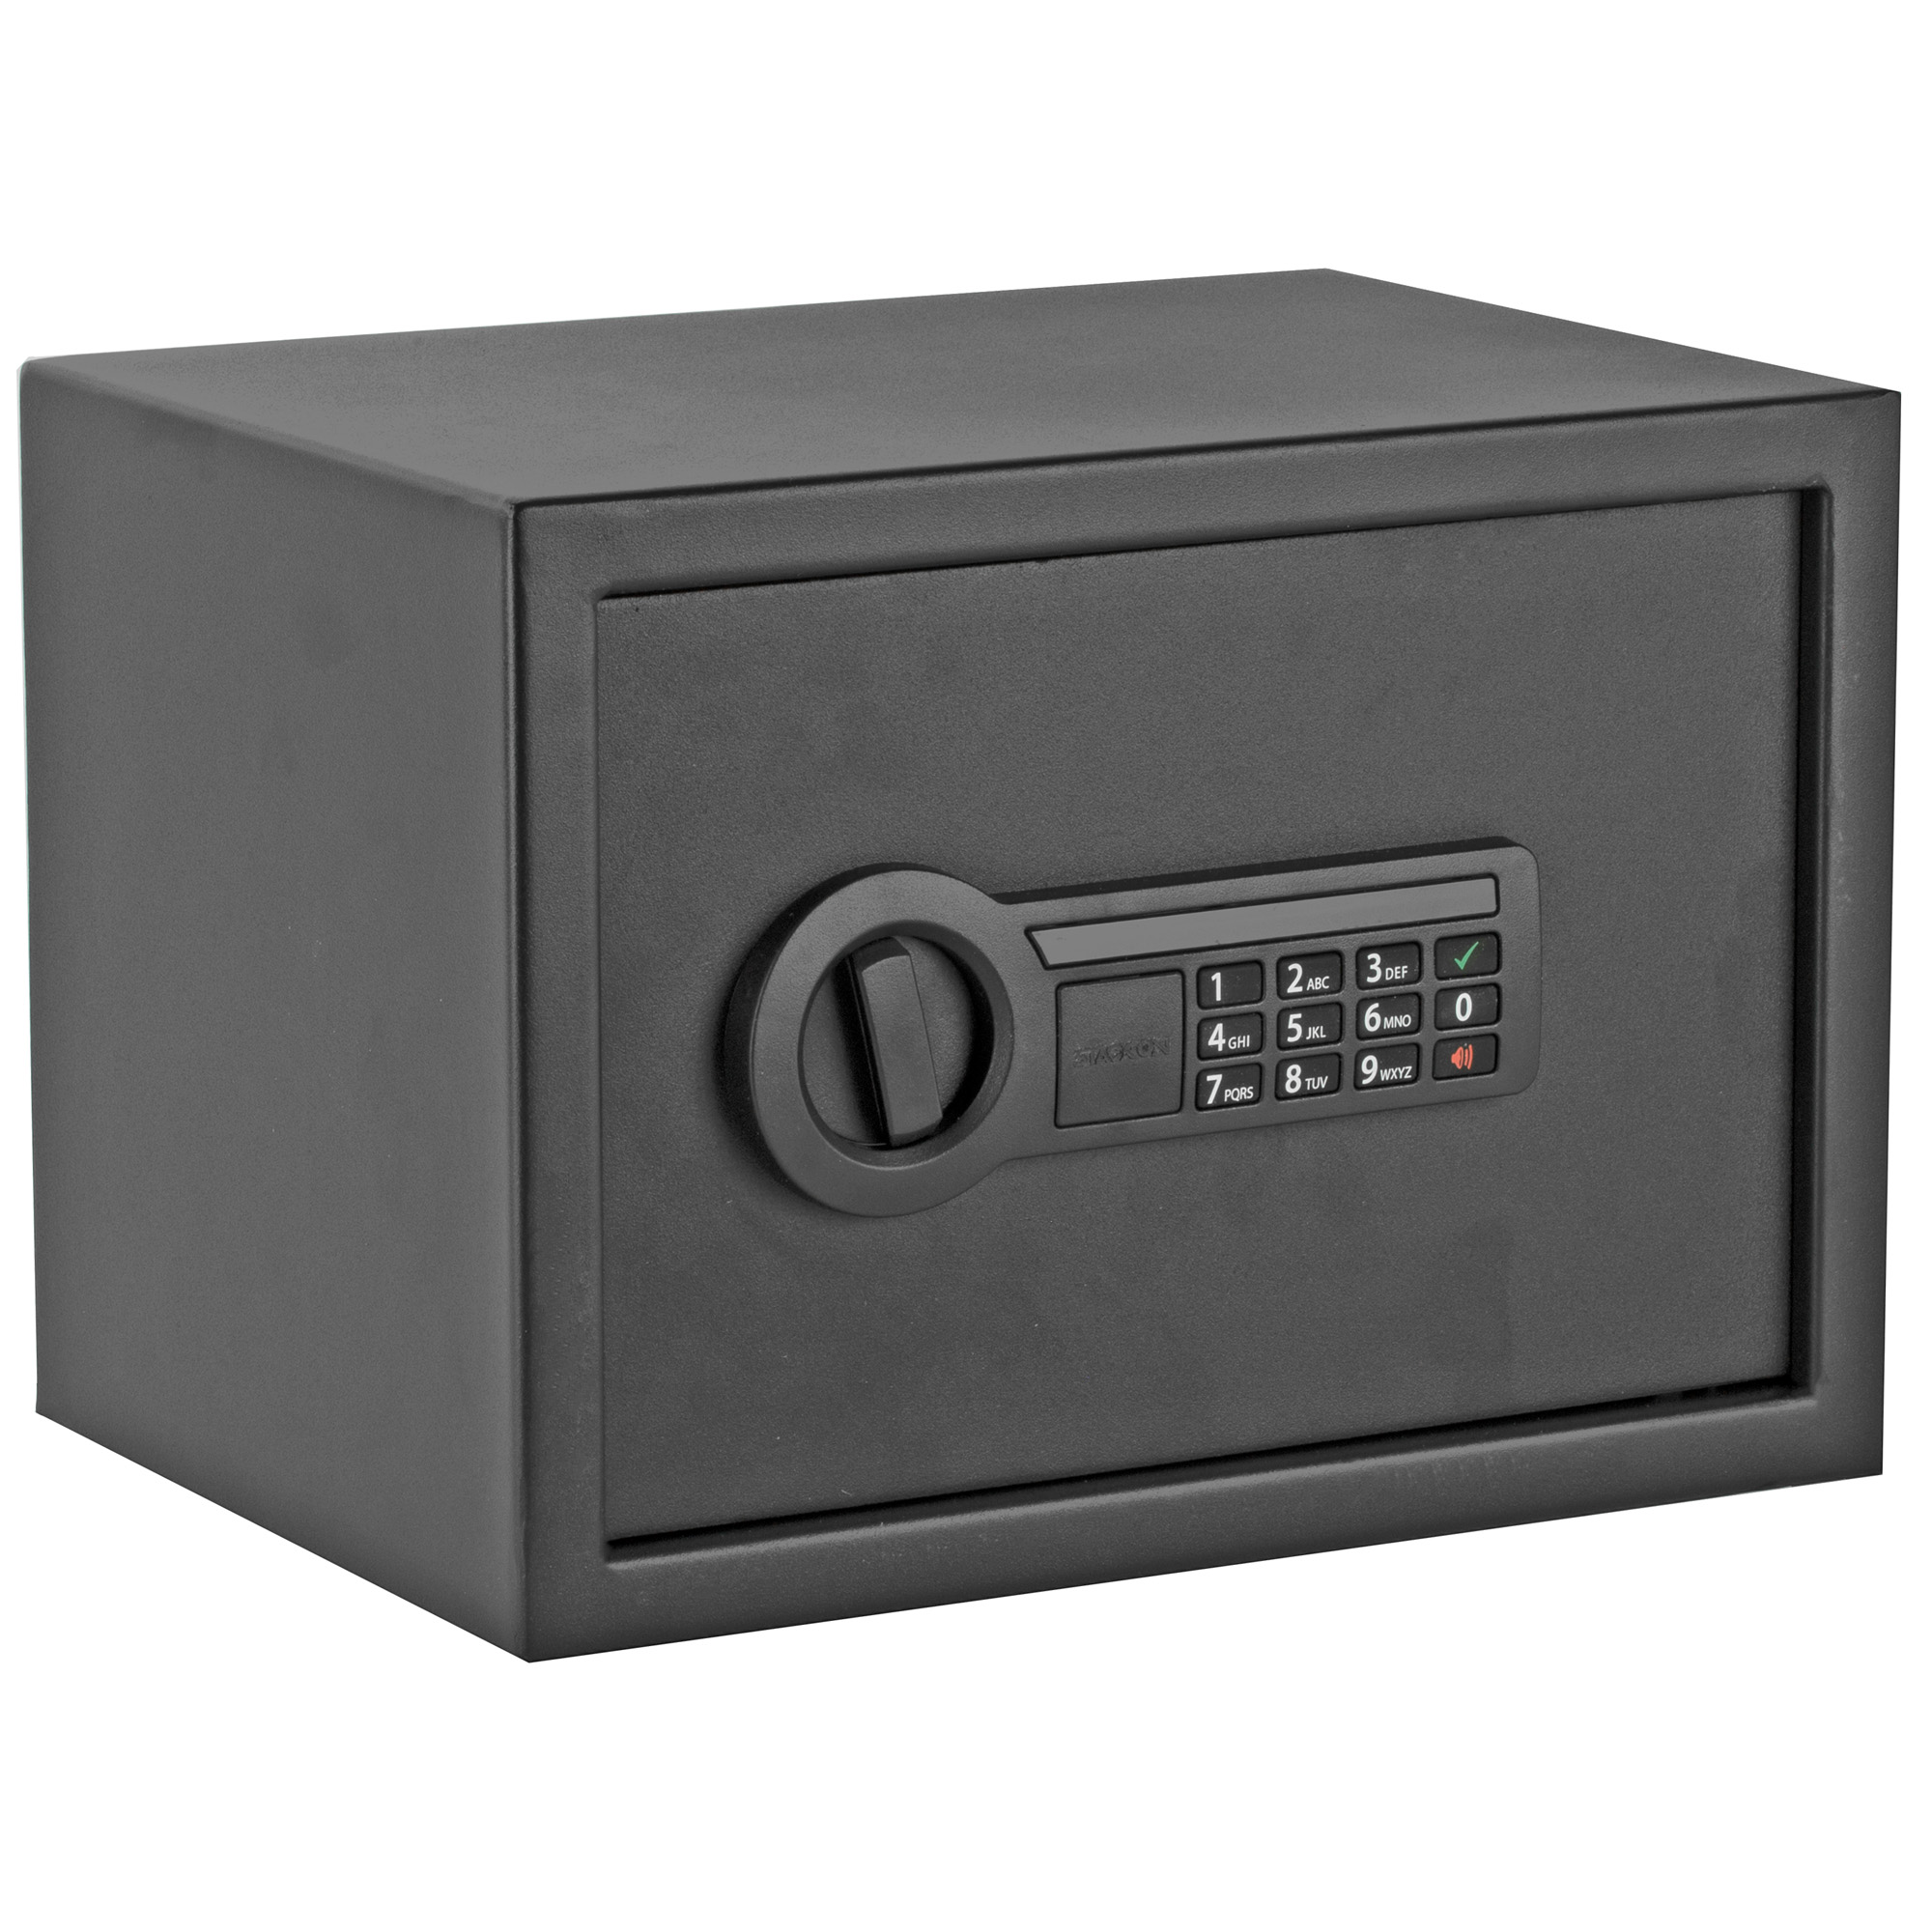 """Great for the home"""" office"""" garage or anywhere else"""" this Stack-On Personal Safe with Electronic Keypad can keep your belongings secure."""